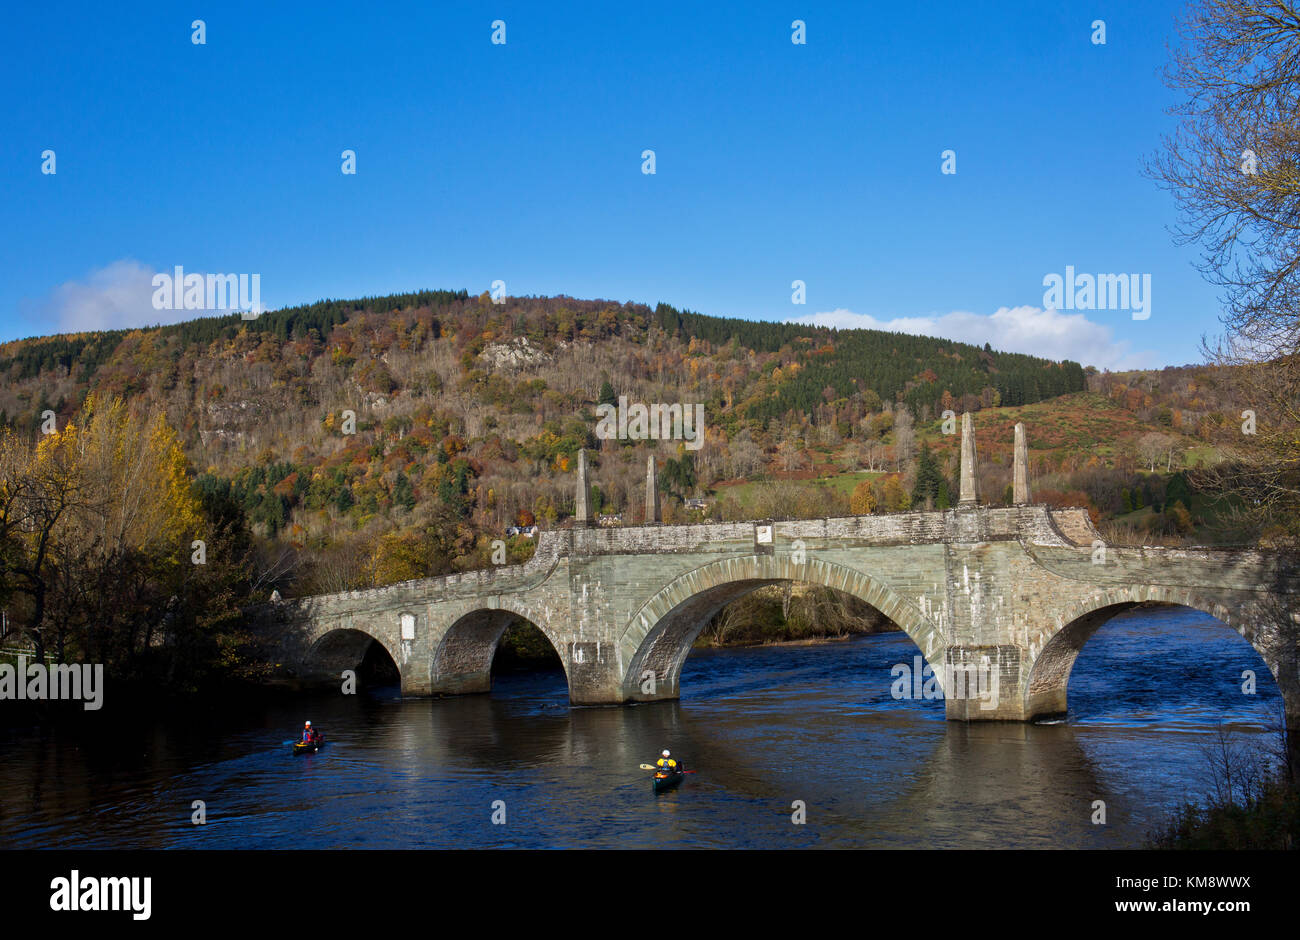 The Tay Bridge at Aberfeldy, Built by General George Wade, in Autunm - Stock Image